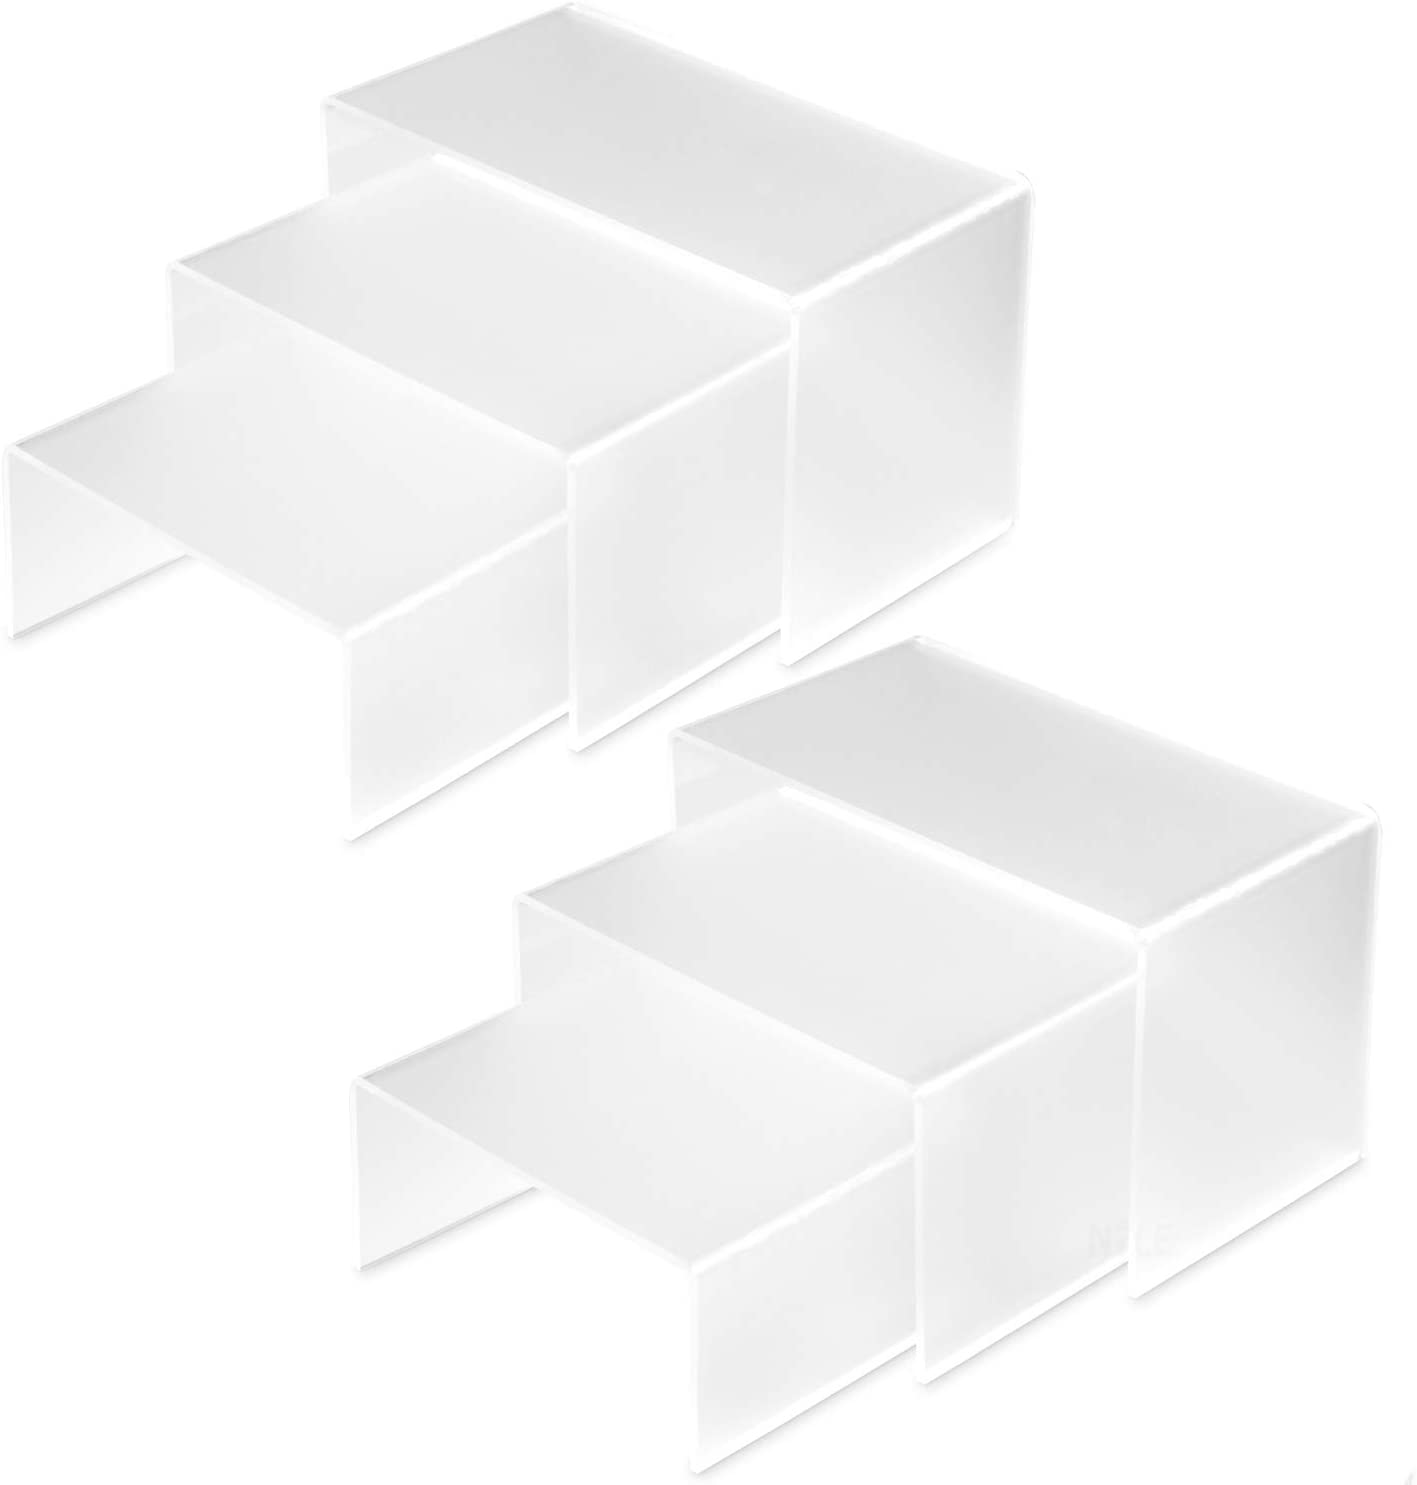 Ikee Design Acrylic 6Pcs Sets Acrylic Display Risers, Jewelry Display Riser Shelf Showcase Fixtures for Cup Cakes, Jewelry, Collections, Showcase Display, White Frost.